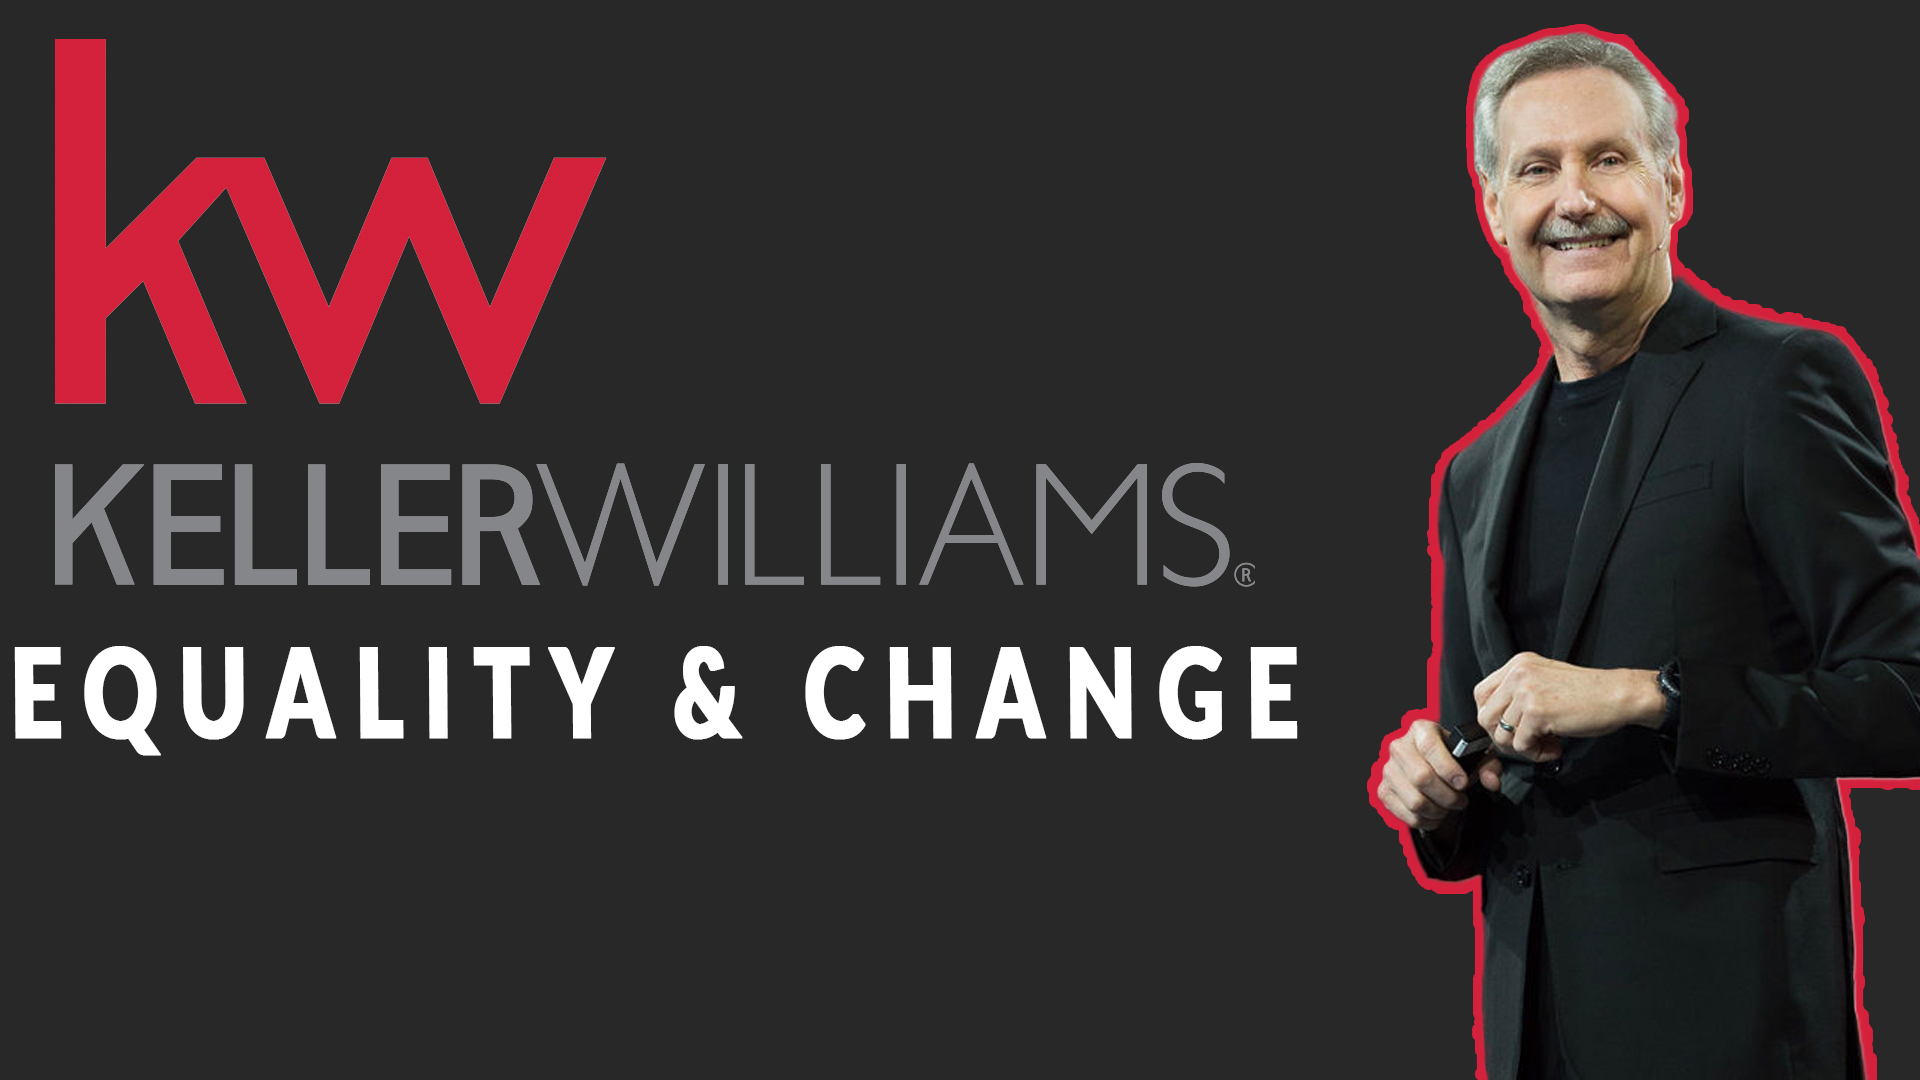 Keller Williams: We Stand Together In Support Of Equality and Change